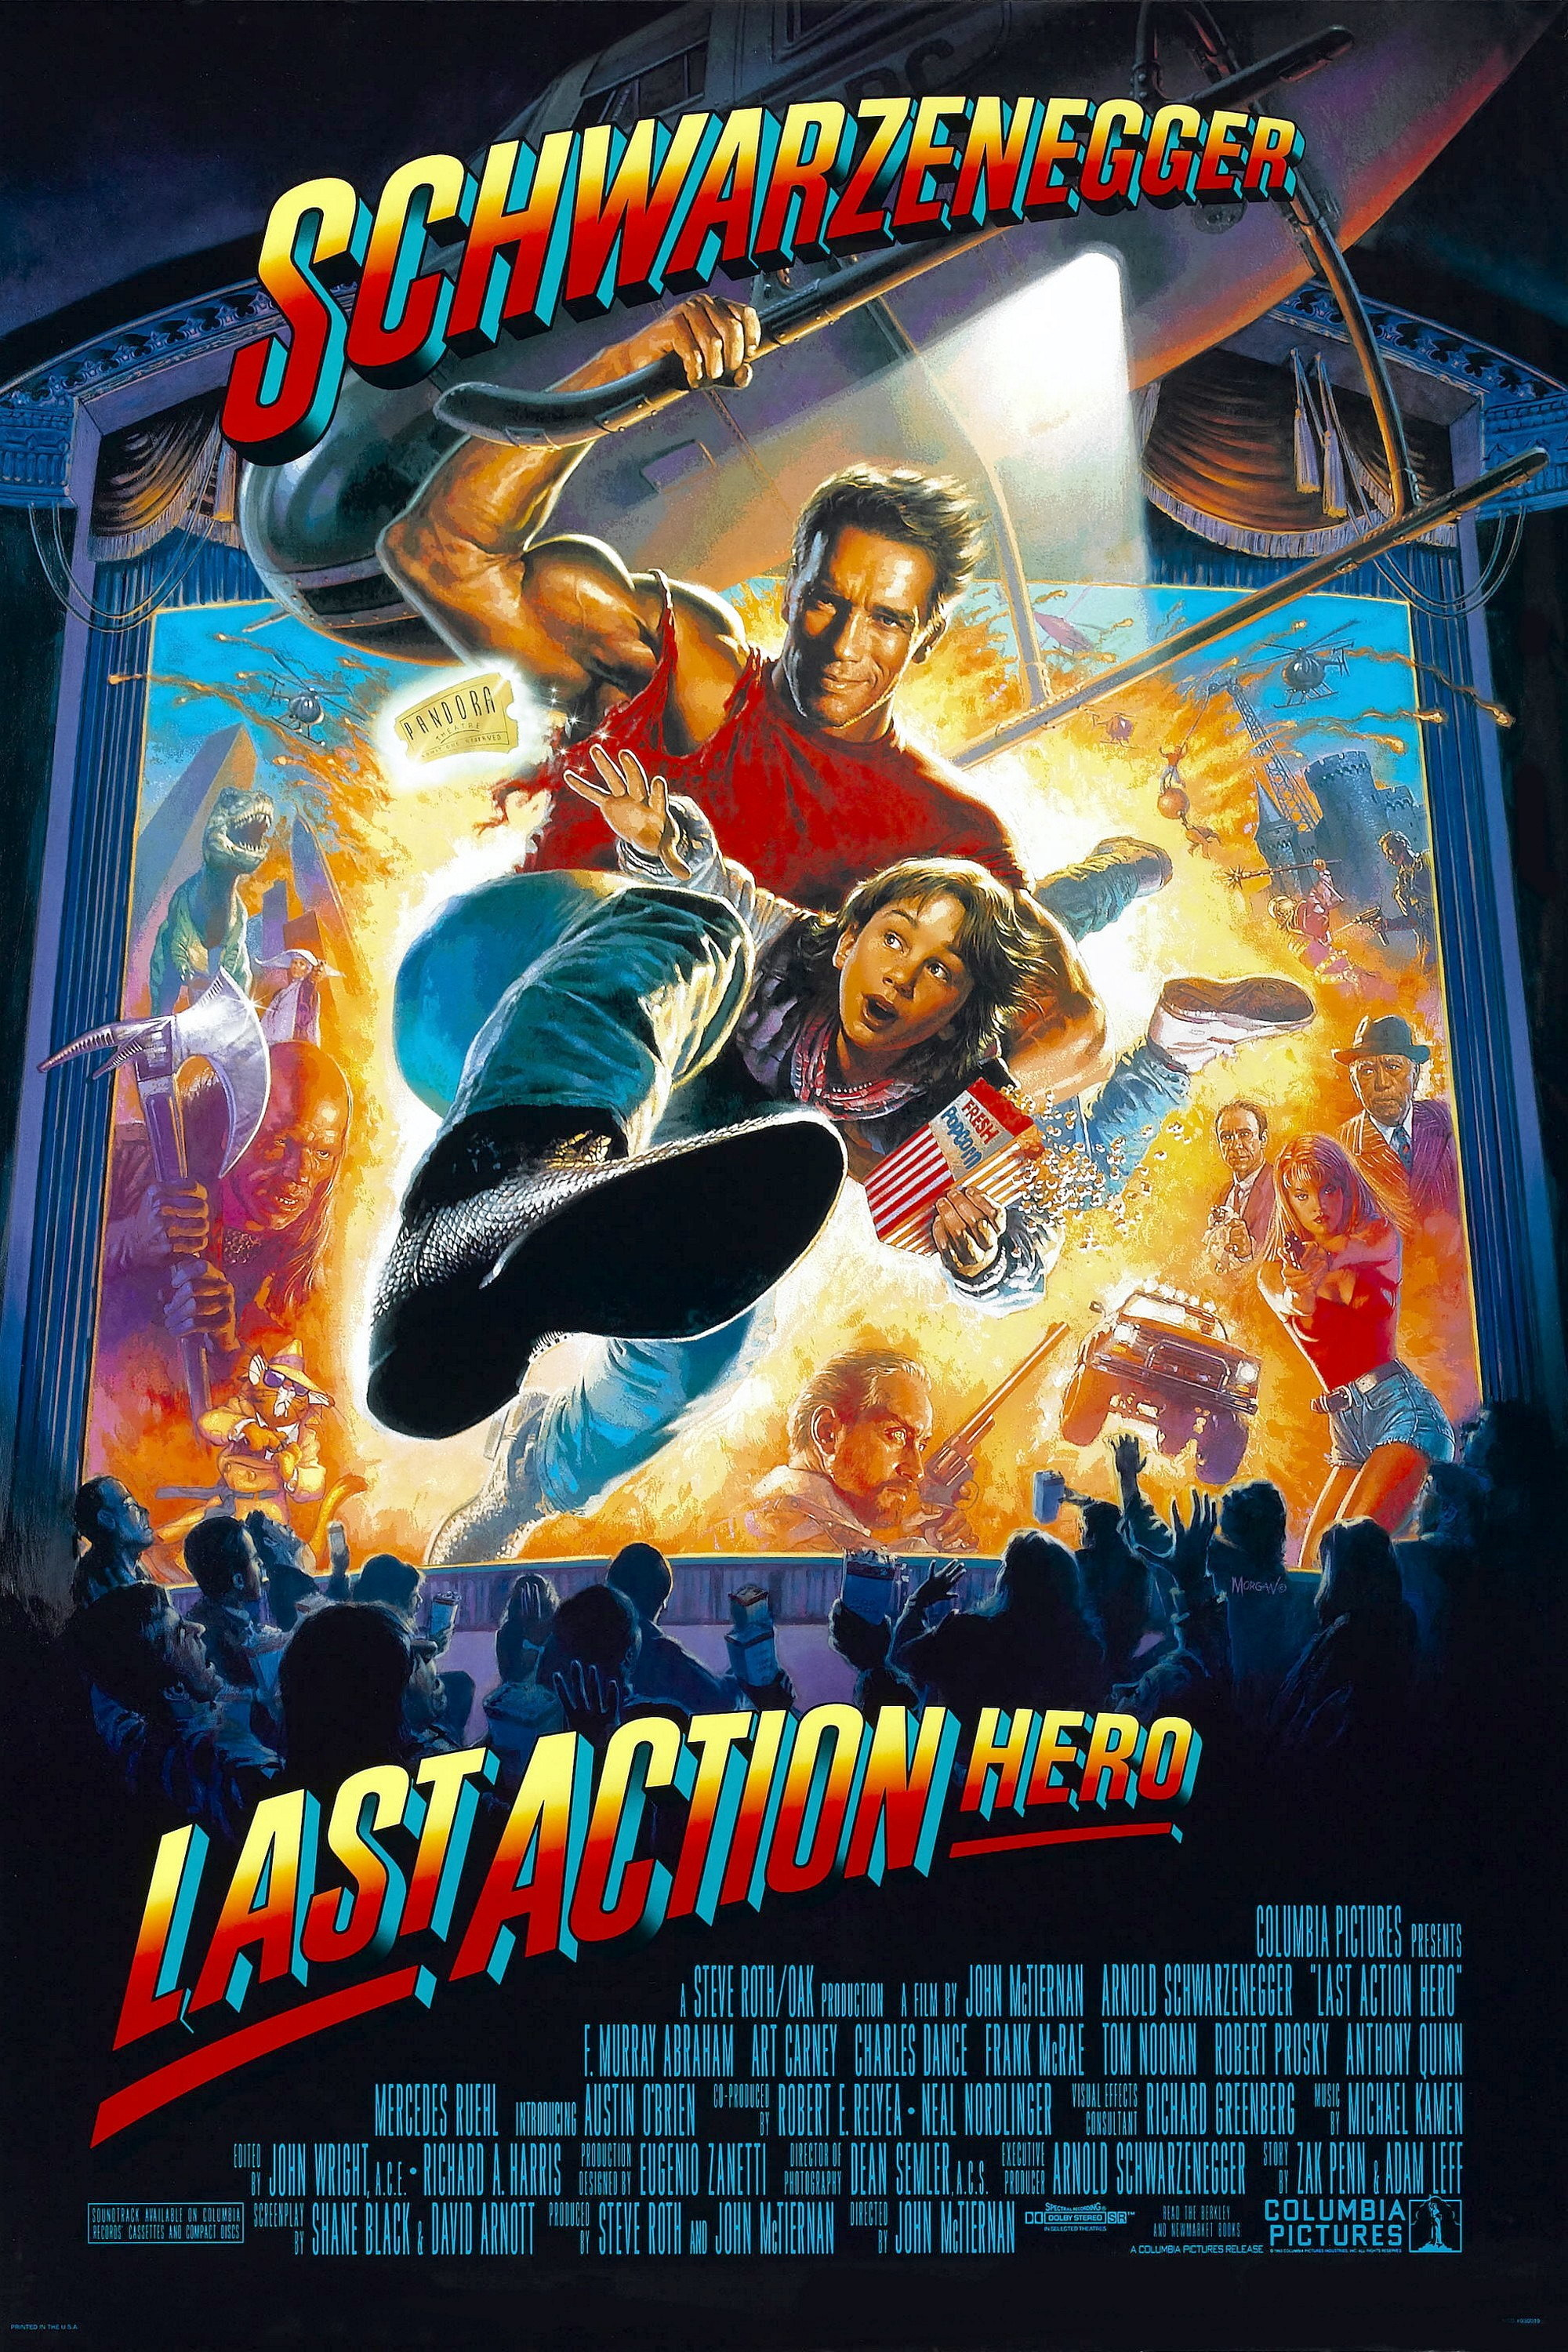 The last hero of the action movie - the most underrated film Schwarzenegger 3